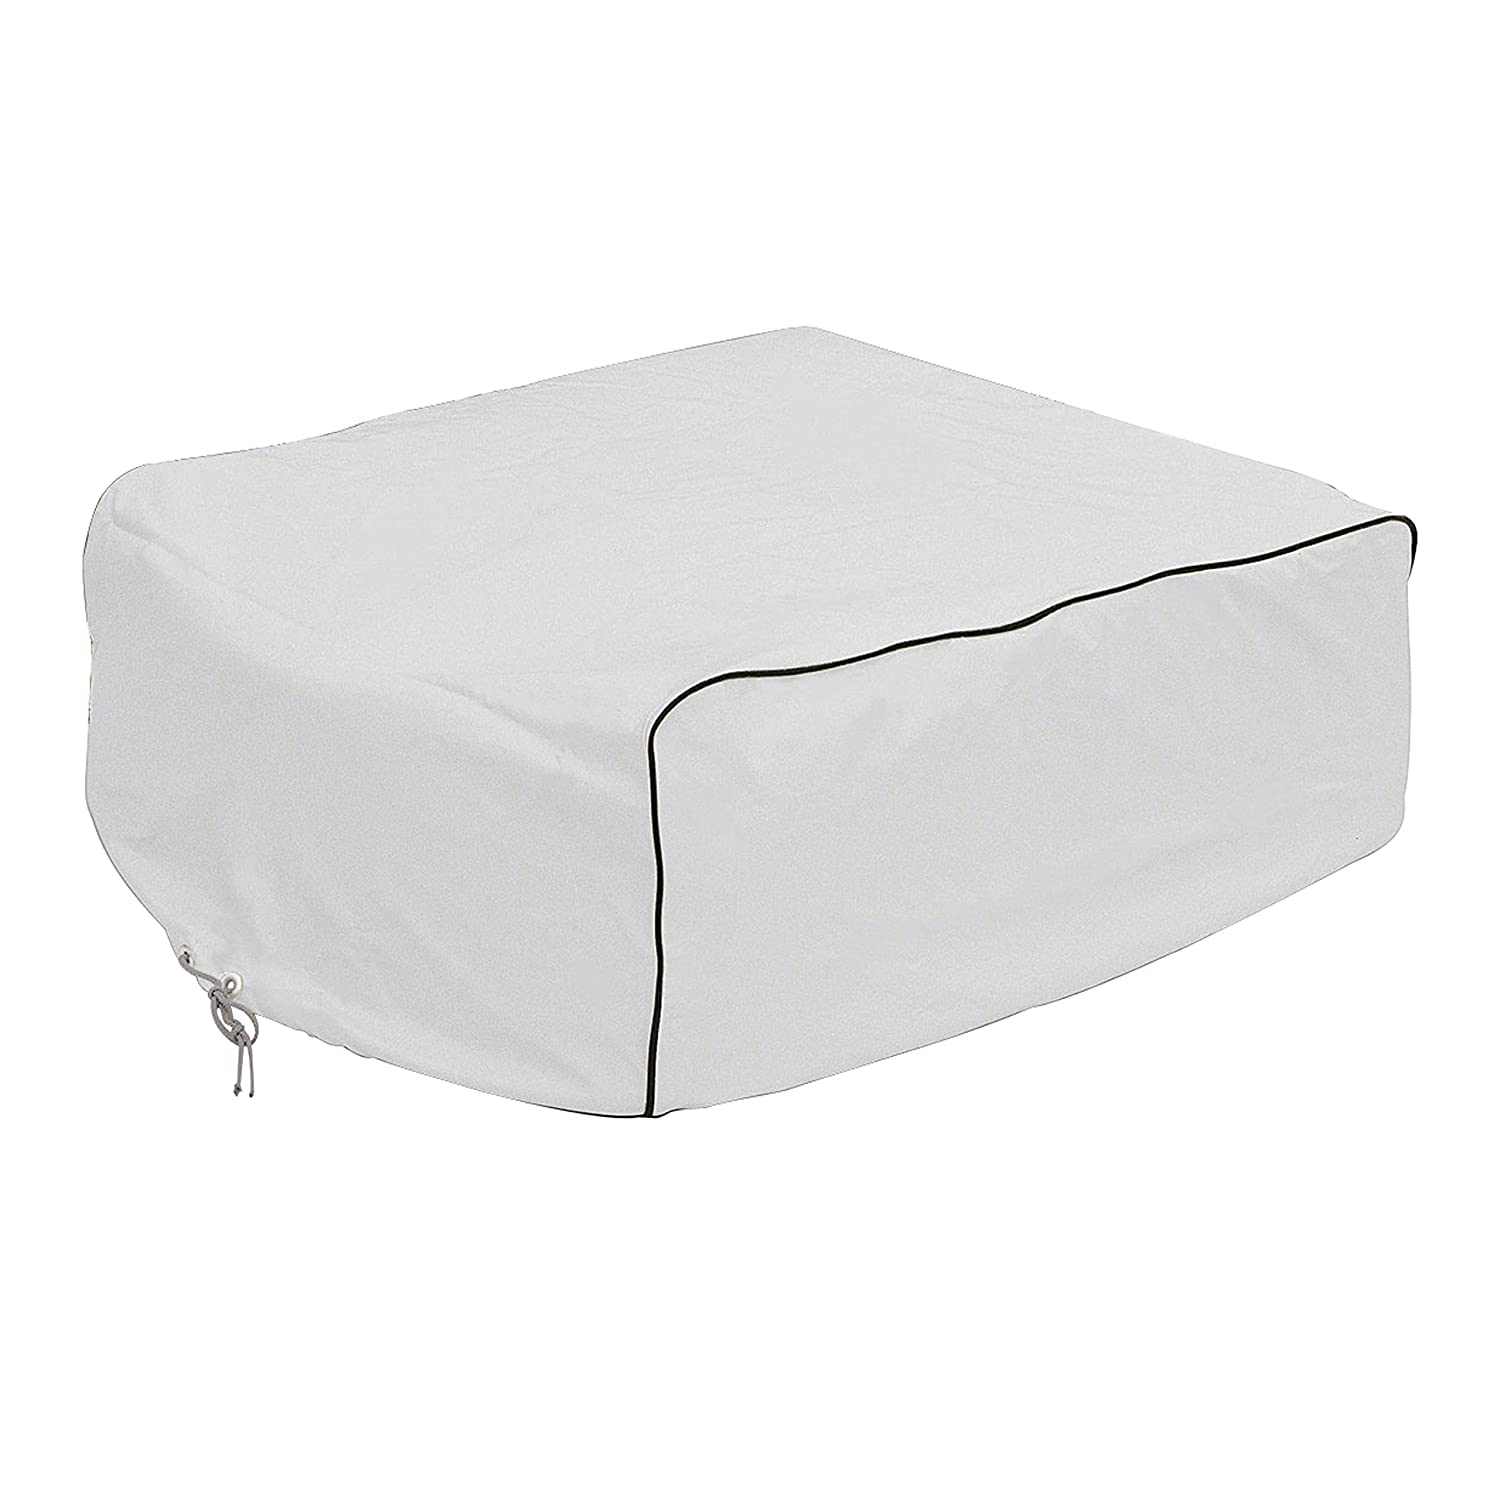 Classic Accessories 77410 RV AC Cover, White, For Coleman Mach I, II & III, Mach 3 Plus, Mach 15, Roughneck & TSR